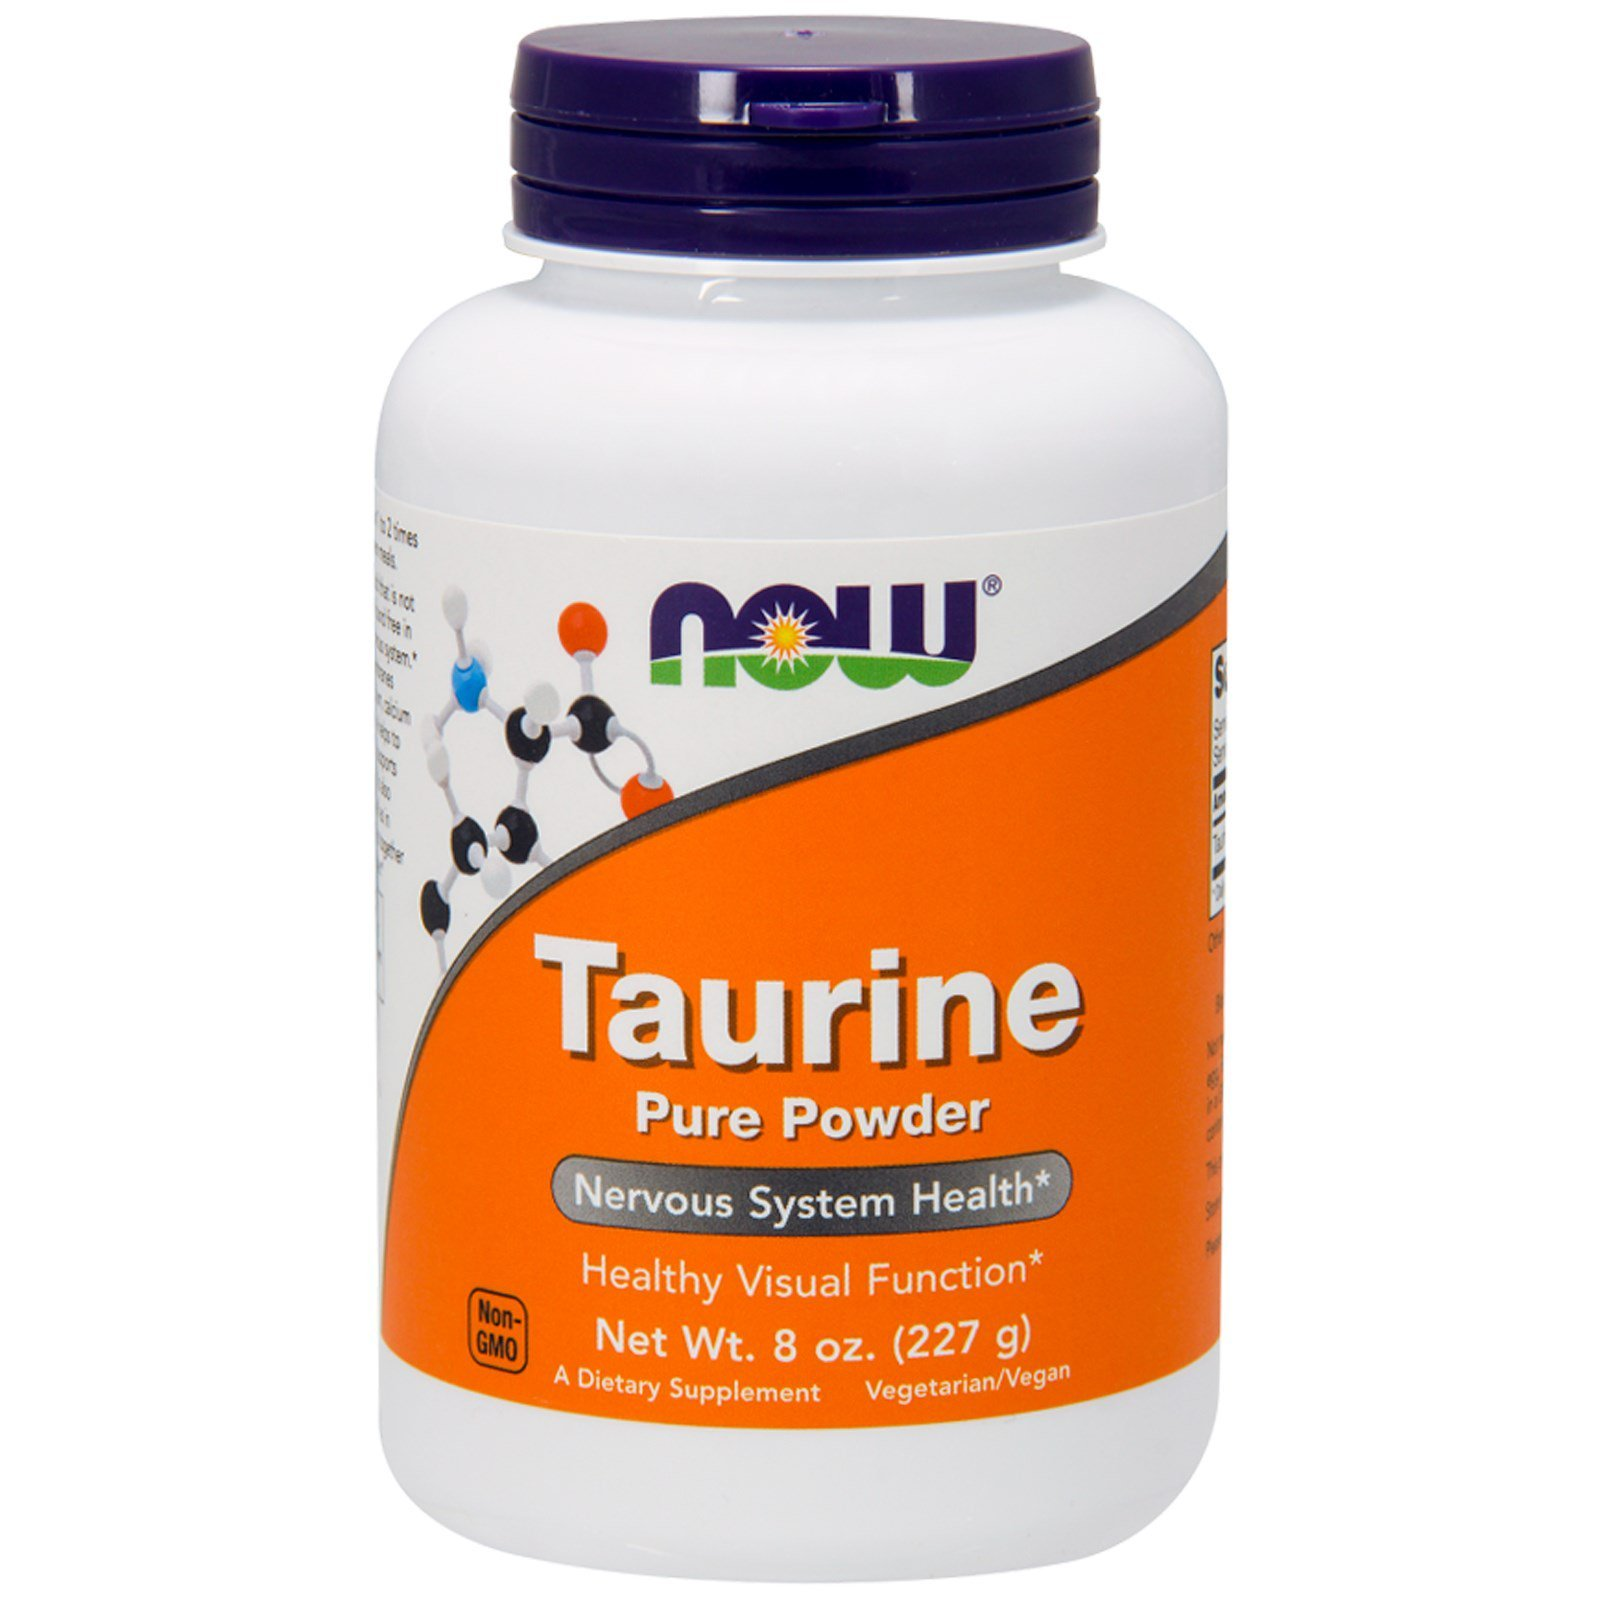 l taurine for weight loss